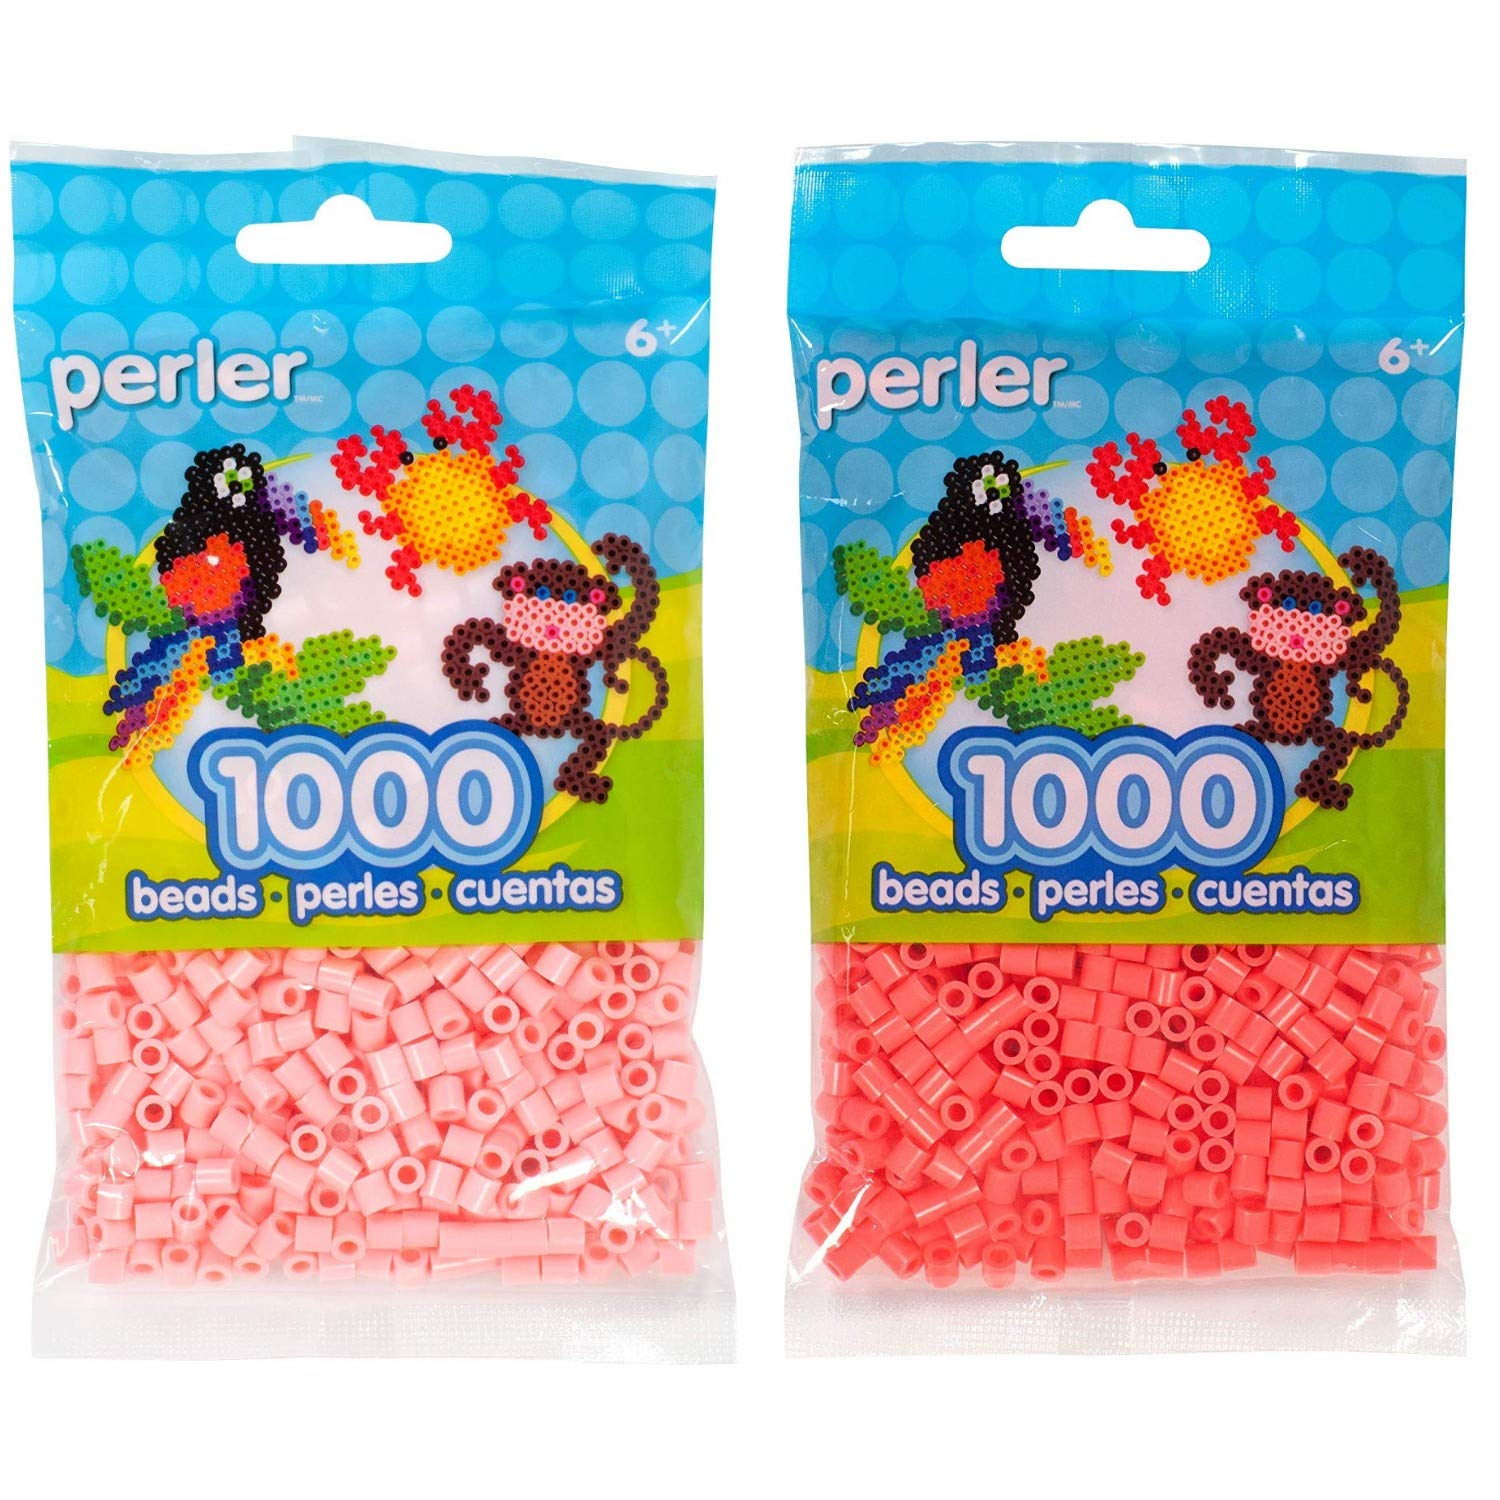 2 Pack Bundle of Pewter and Charcoal Perler Bead Bag 1000